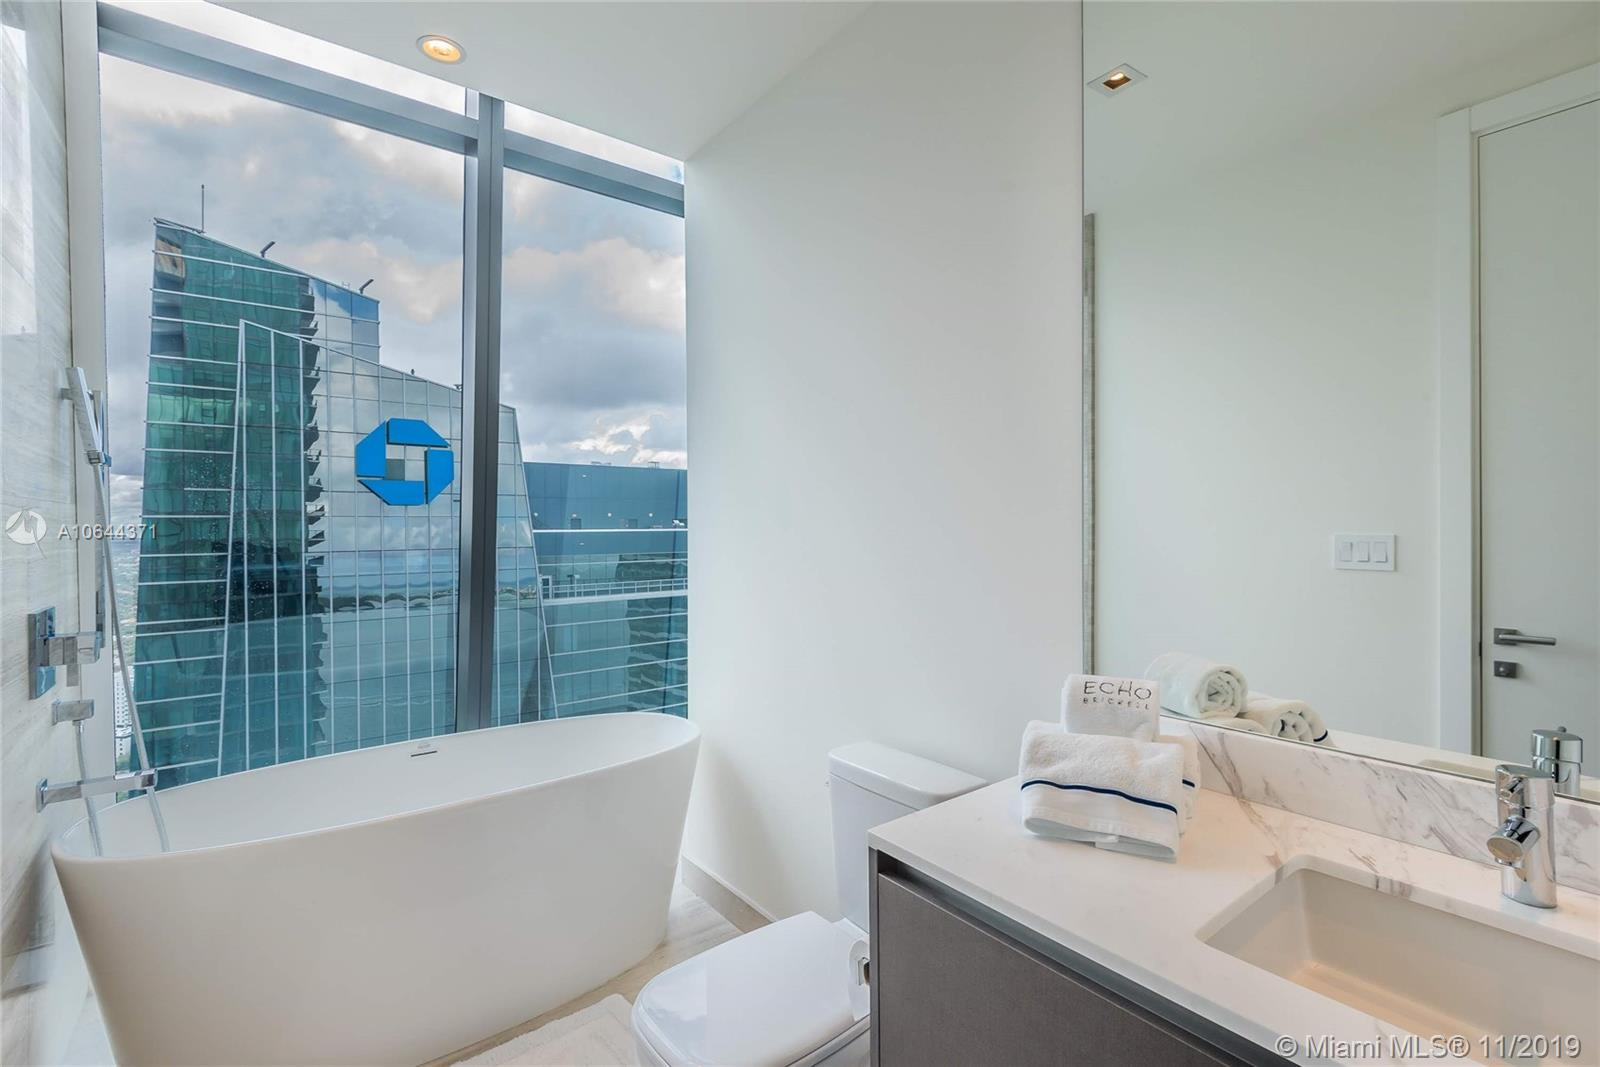 1451 Brickell Ave #4401, Miami, FL 33131